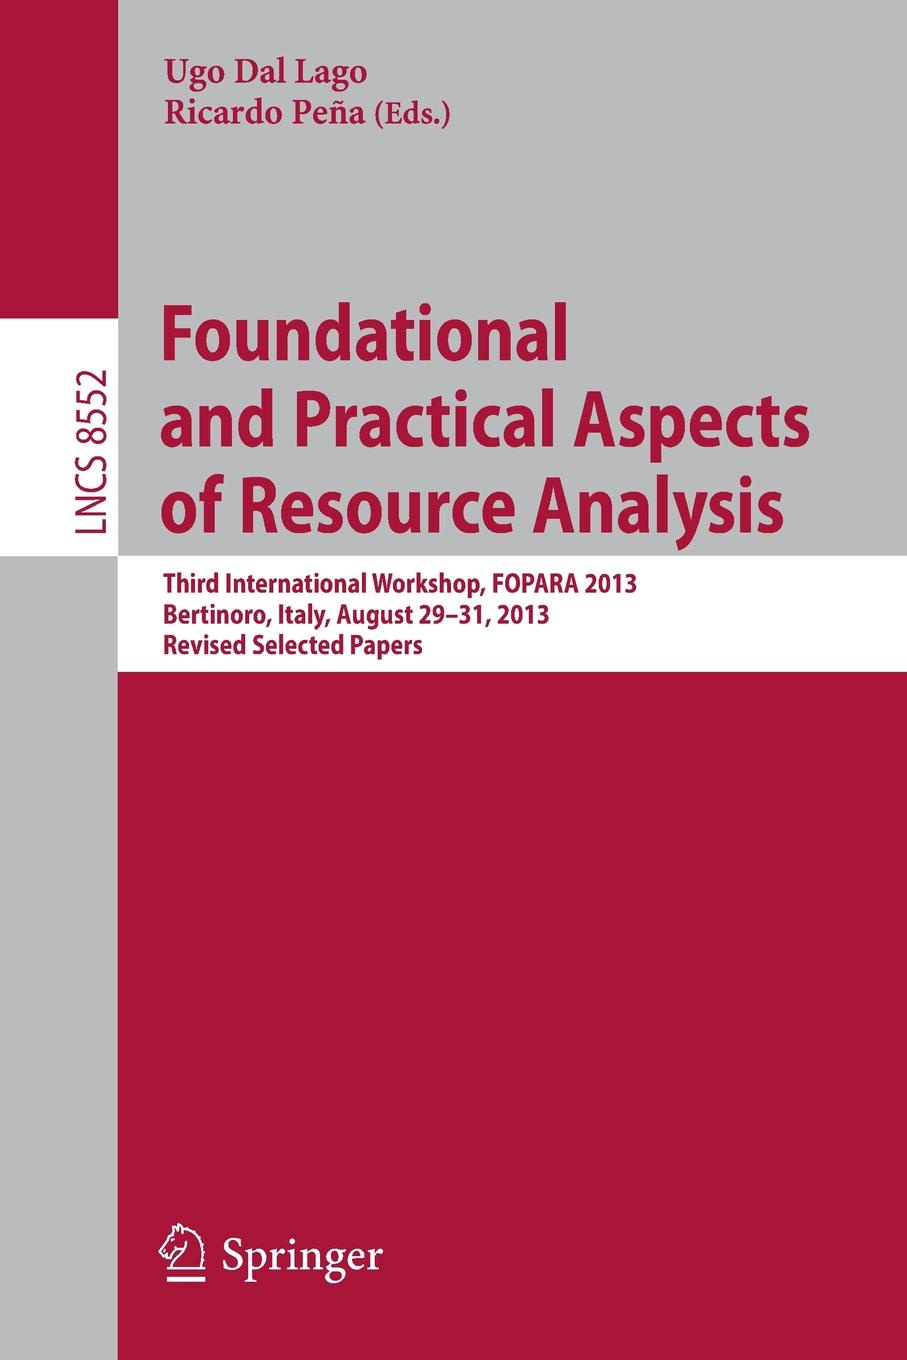 Foundational and Practical Aspects of Resource Analysis. Third International Workshop, FOPARA 2013, Bertinoro, Italy, August 29-31, Revised Selected Papers